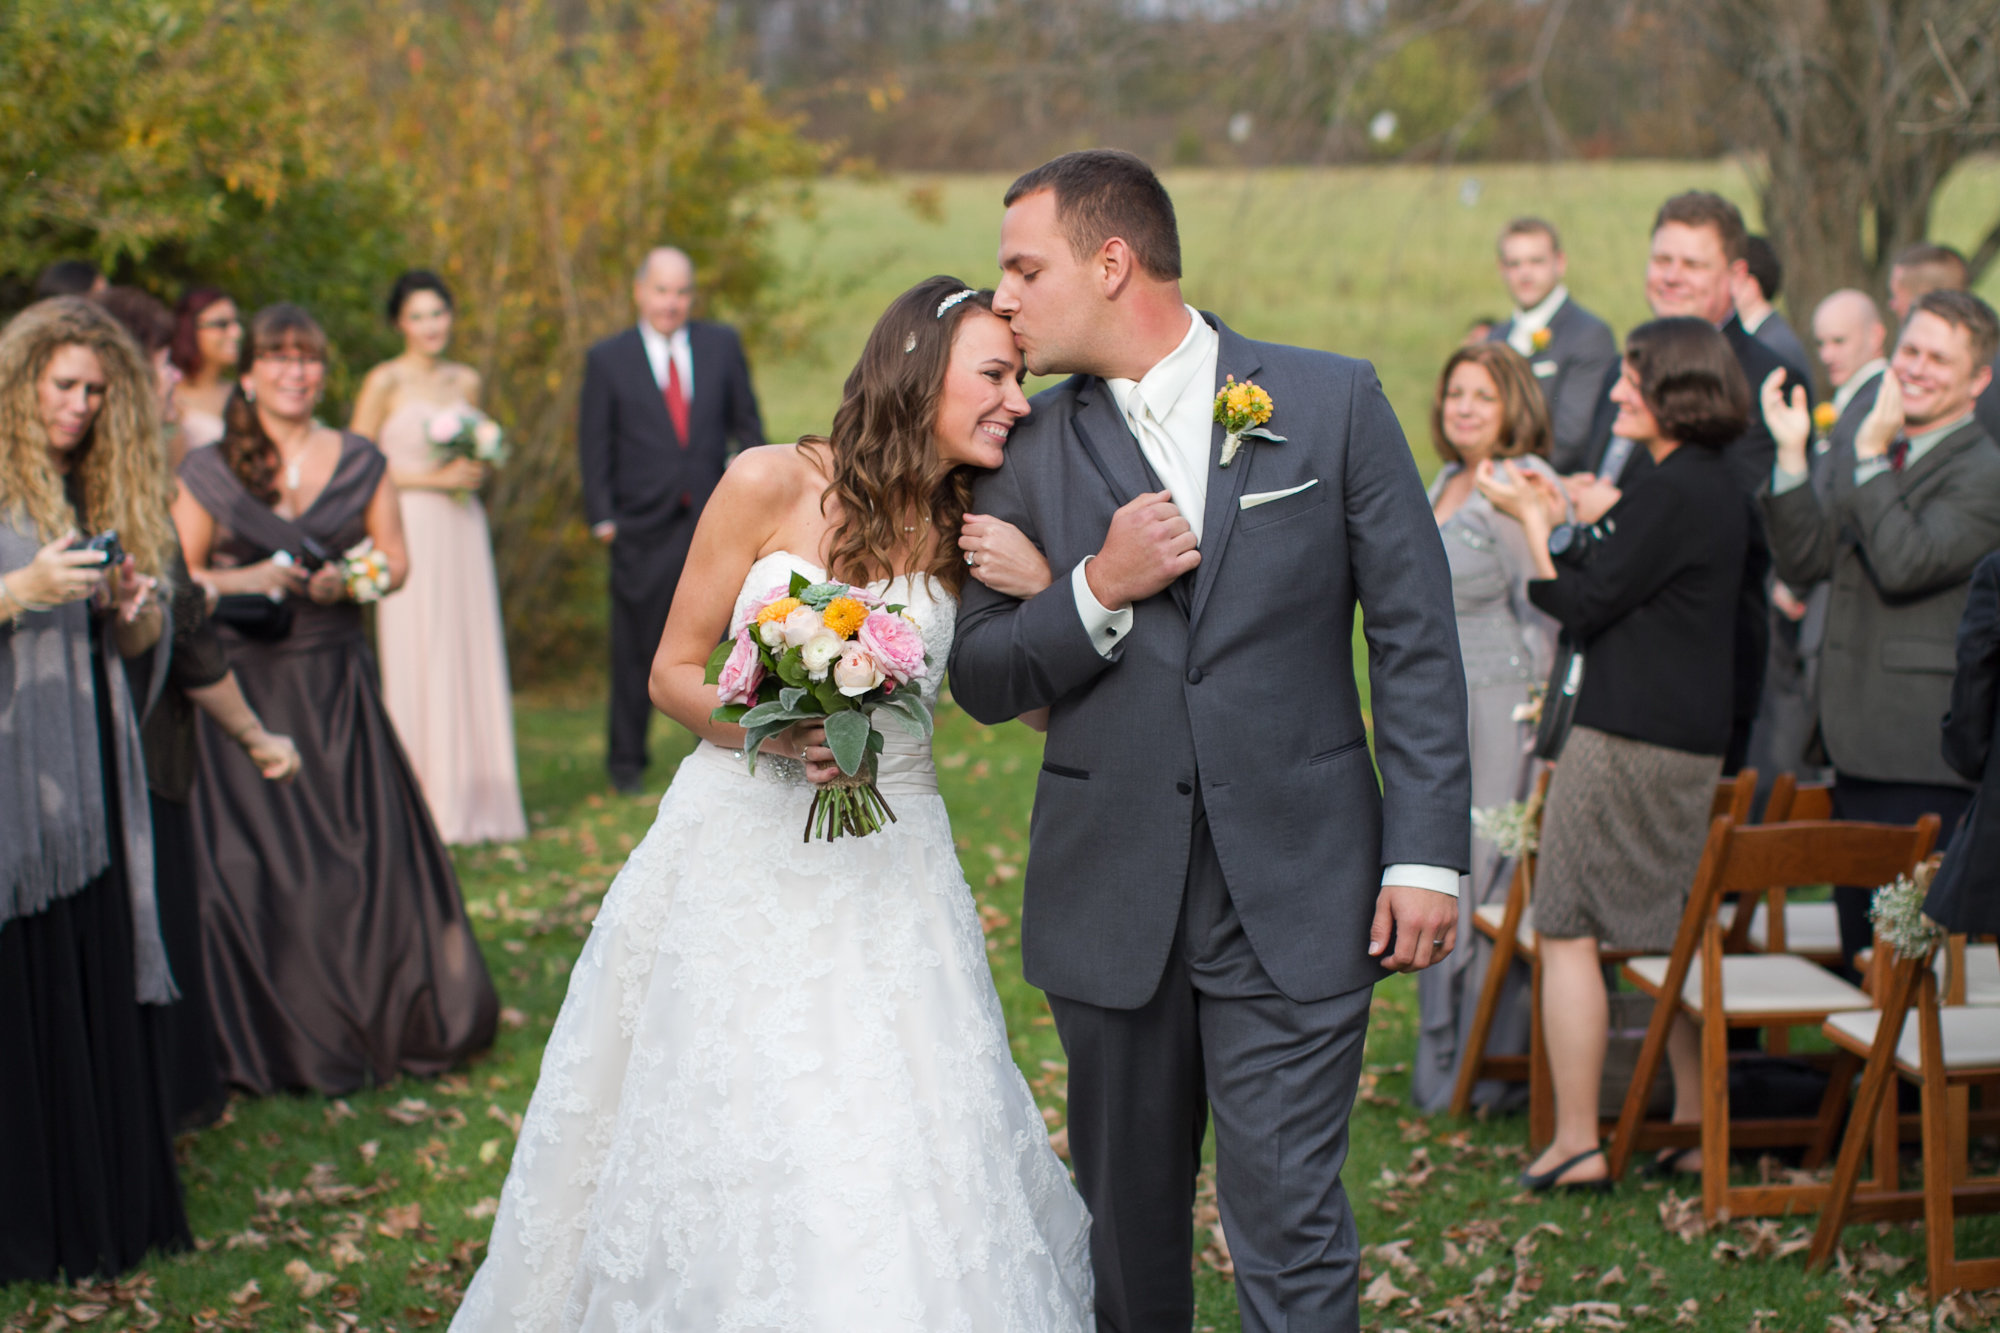 Videographers capture the sweet moments and sounds of your wedding day.